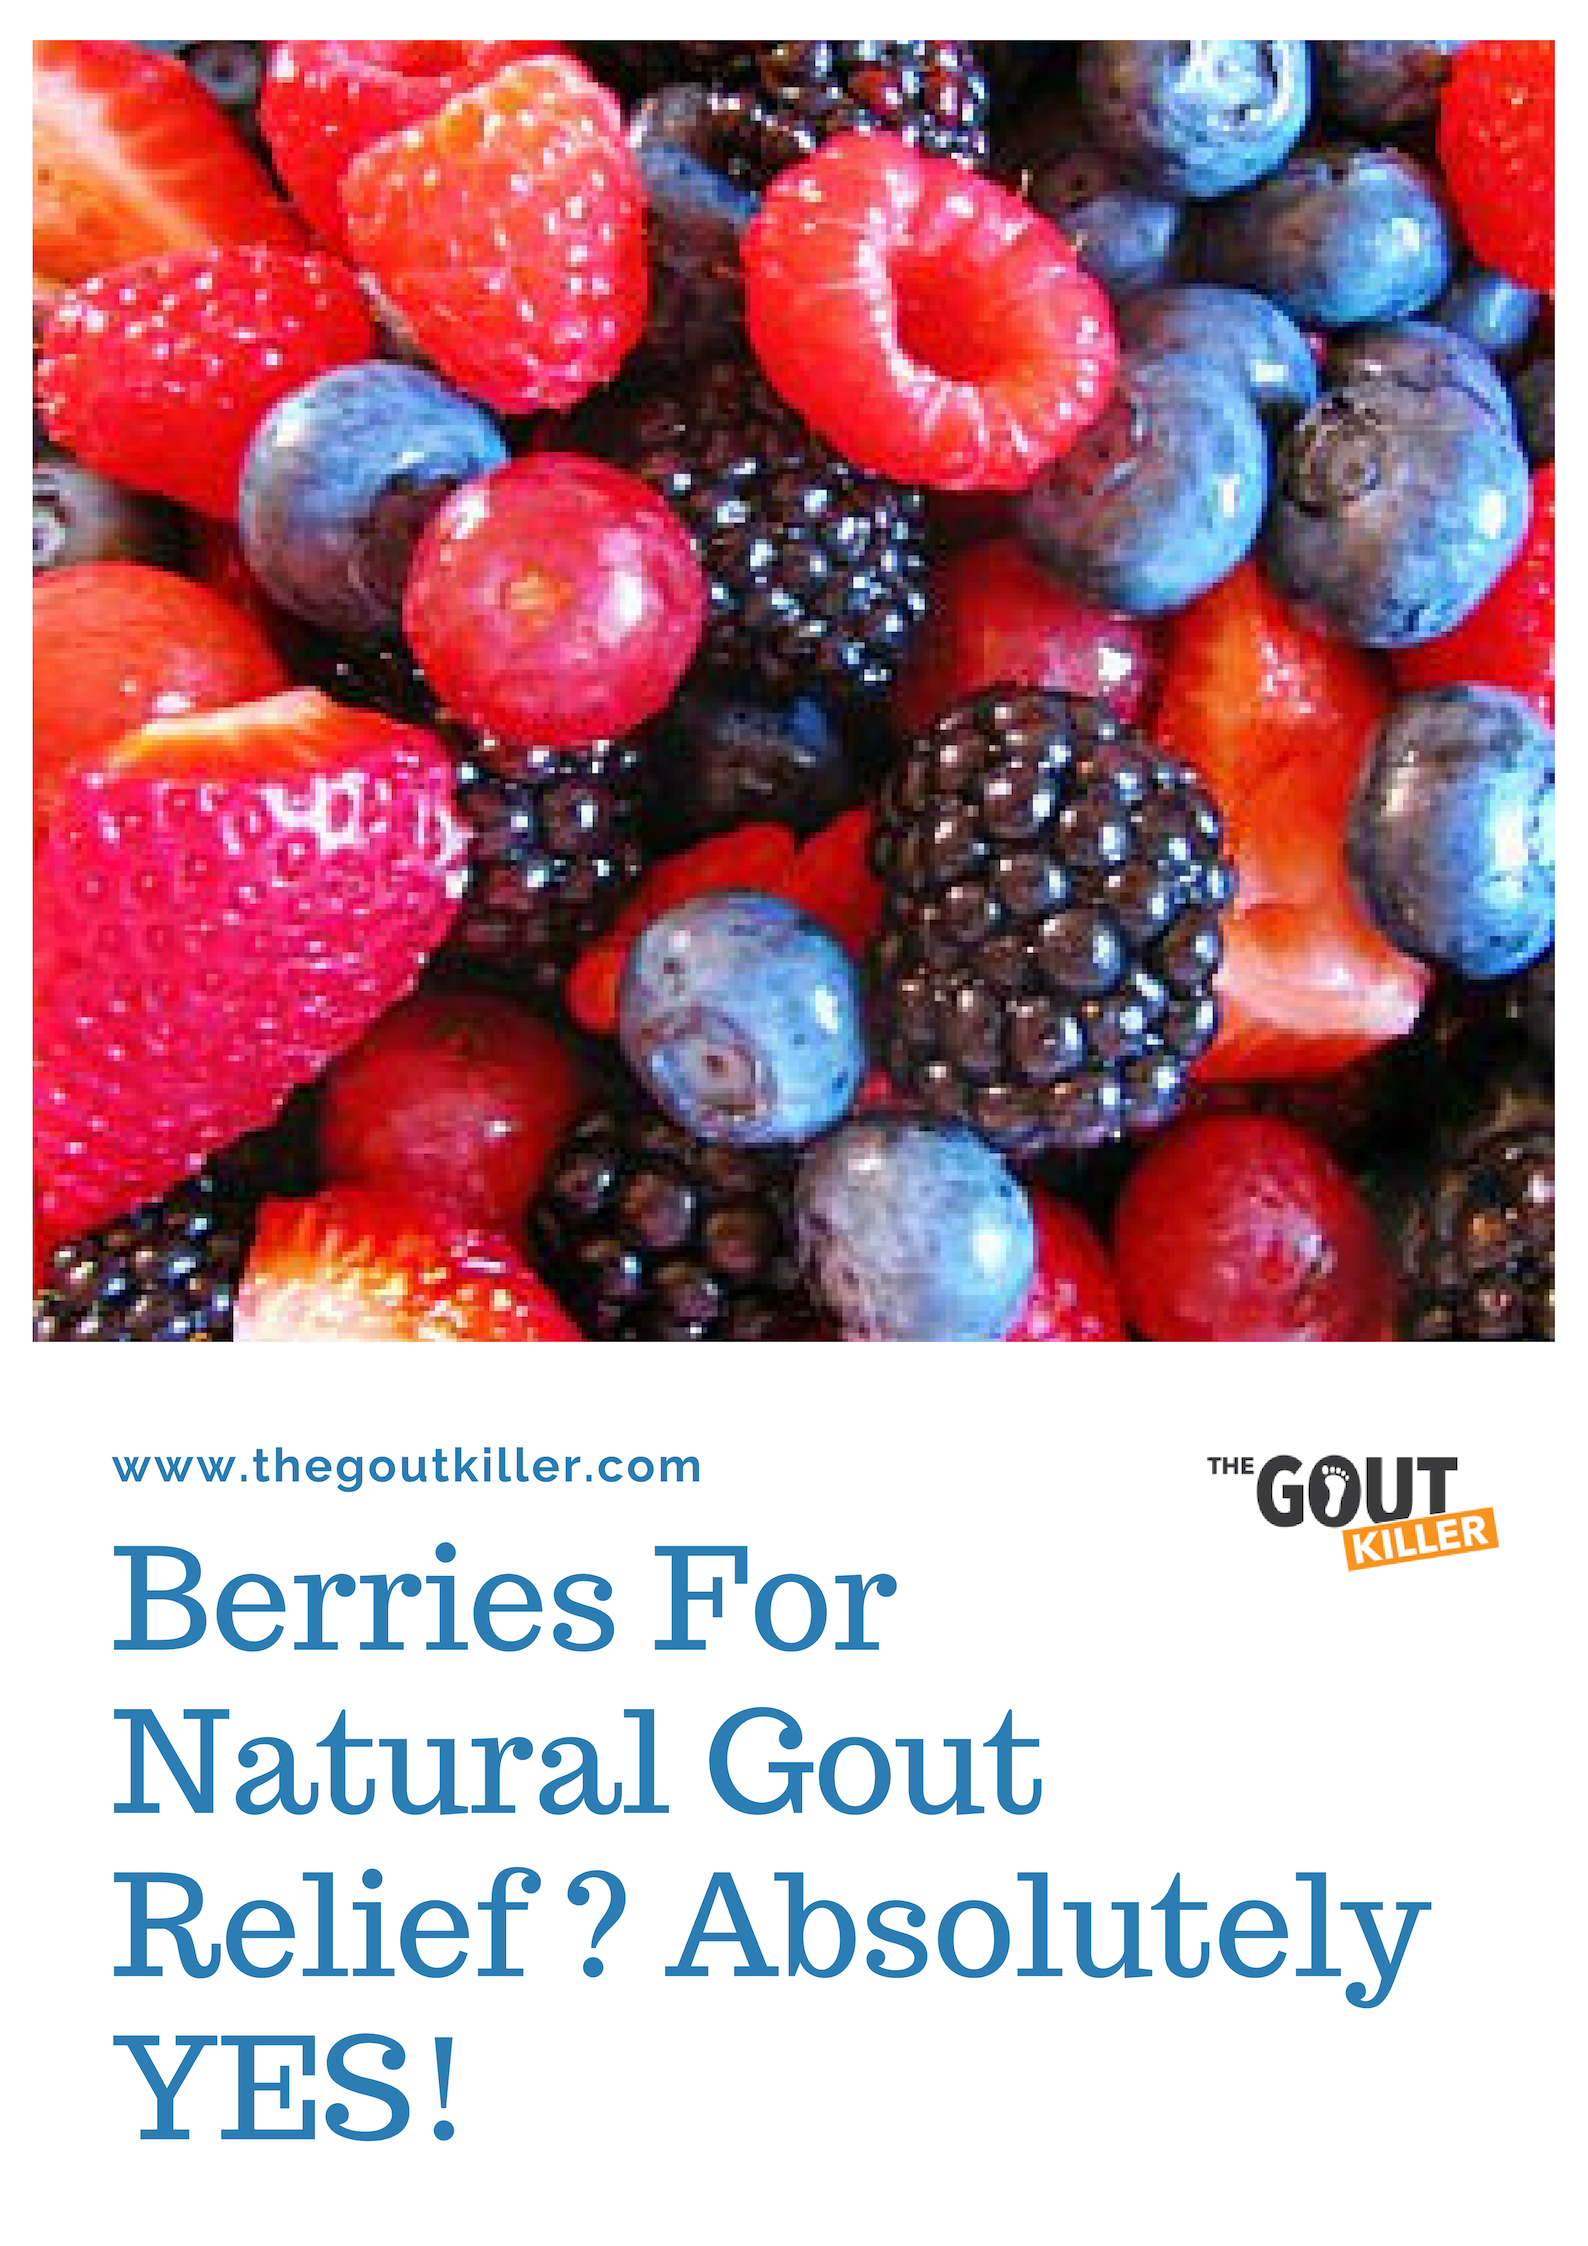 Berries For Natural Gout Relief?